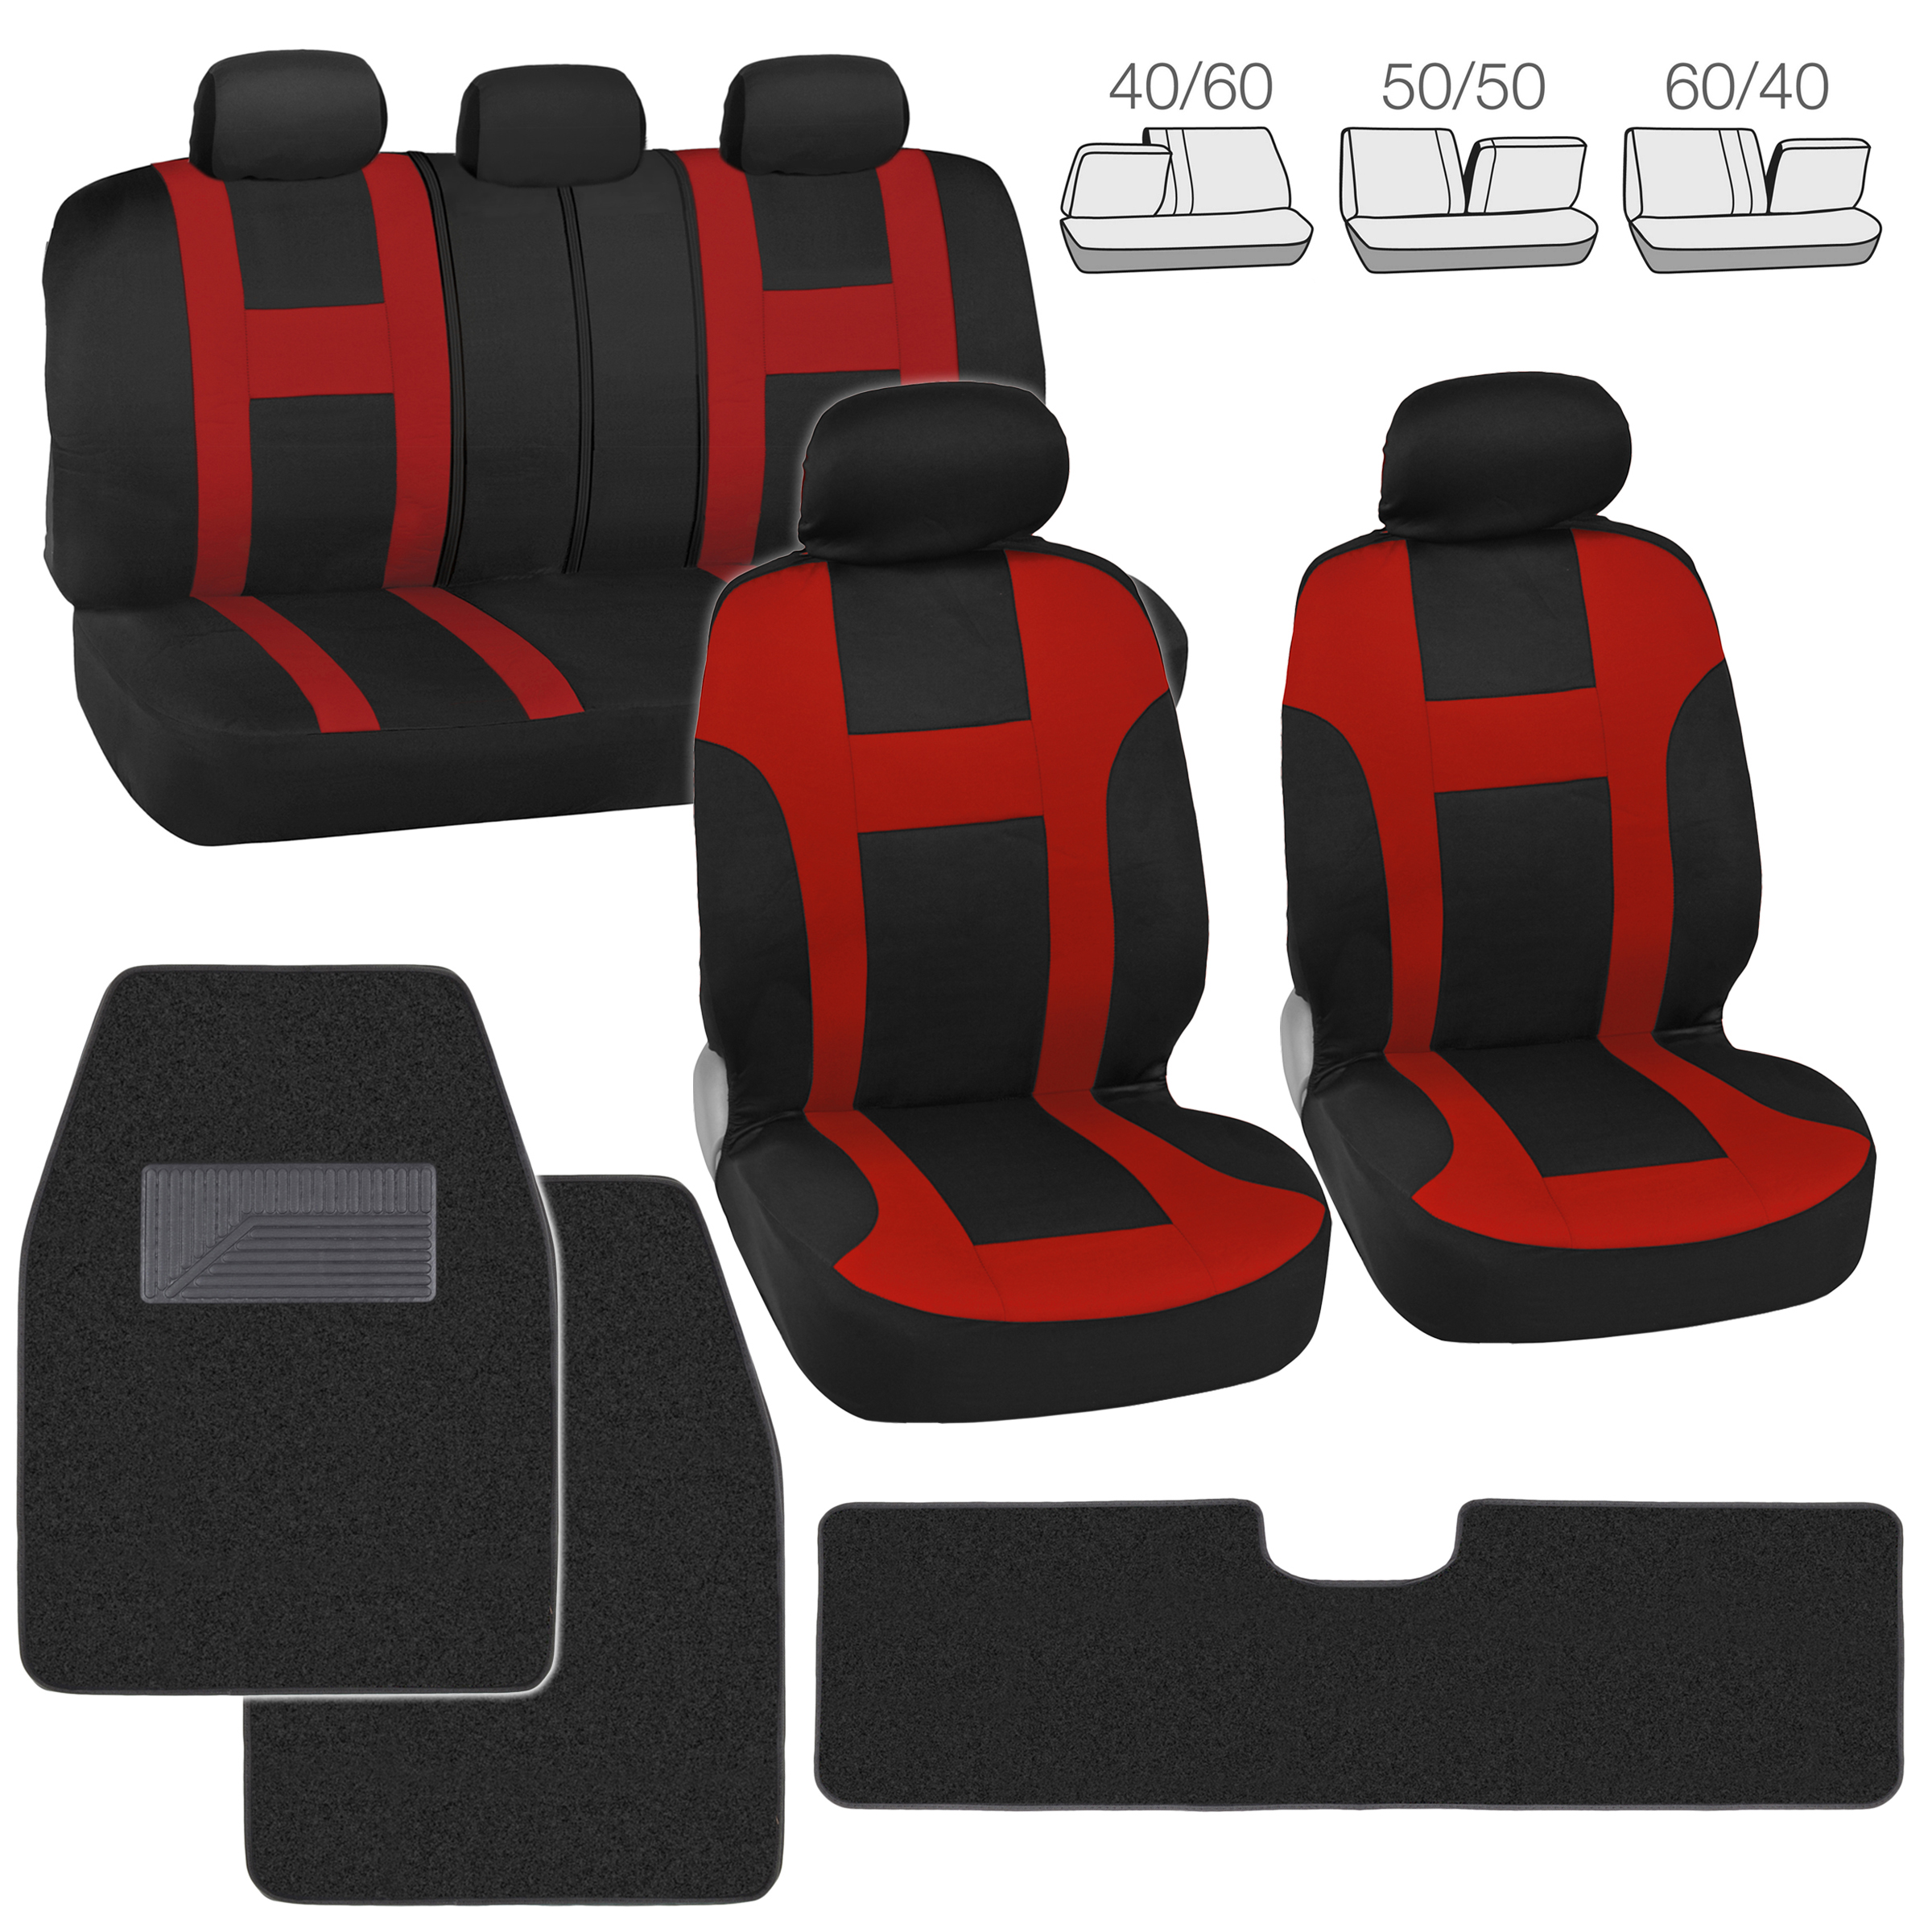 Seat Covers Complete Set For Suv